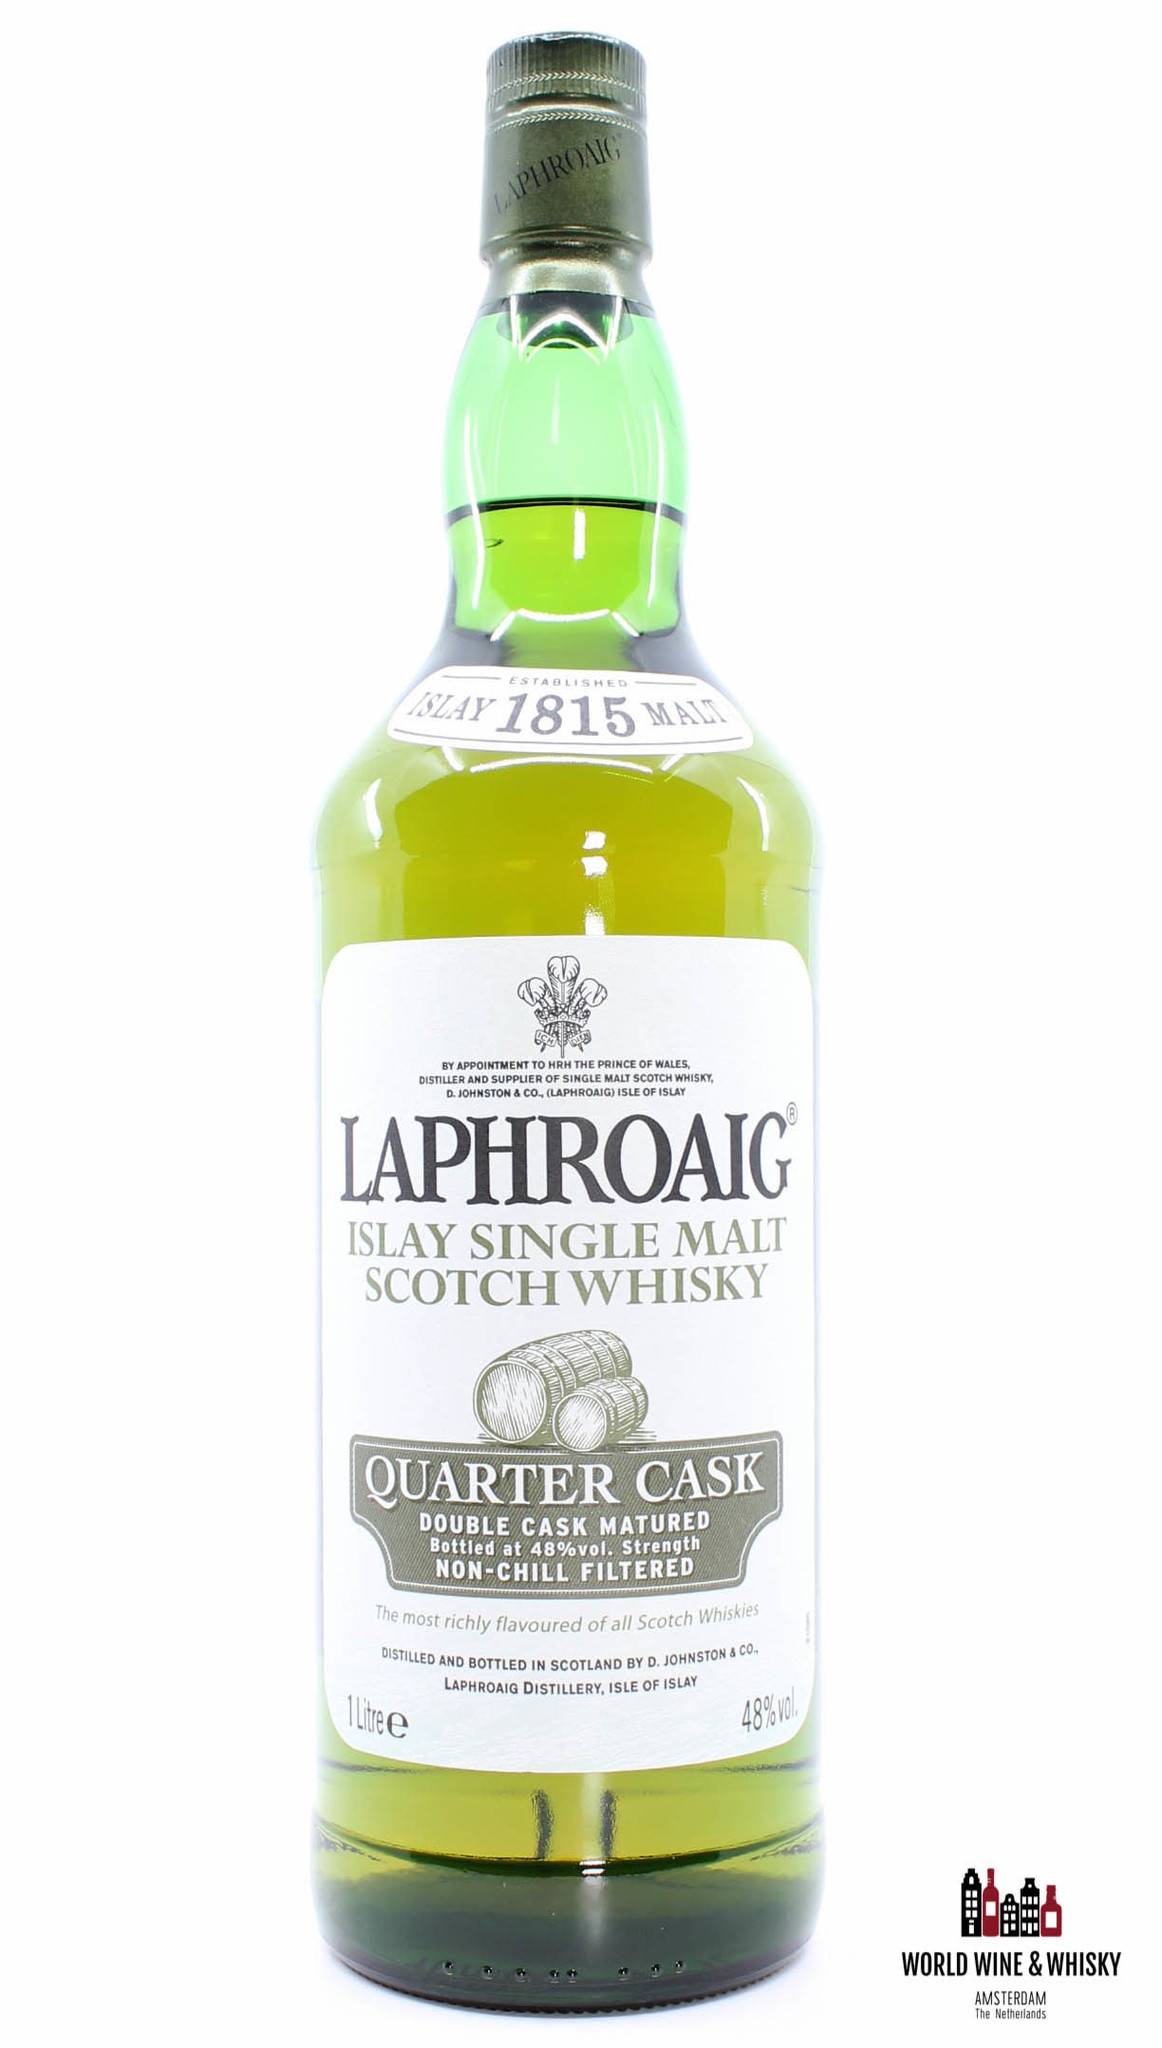 Laphroaig Laphroaig Quarter Cask - Double Cask Matured 48% 1 Litre (1000ml)